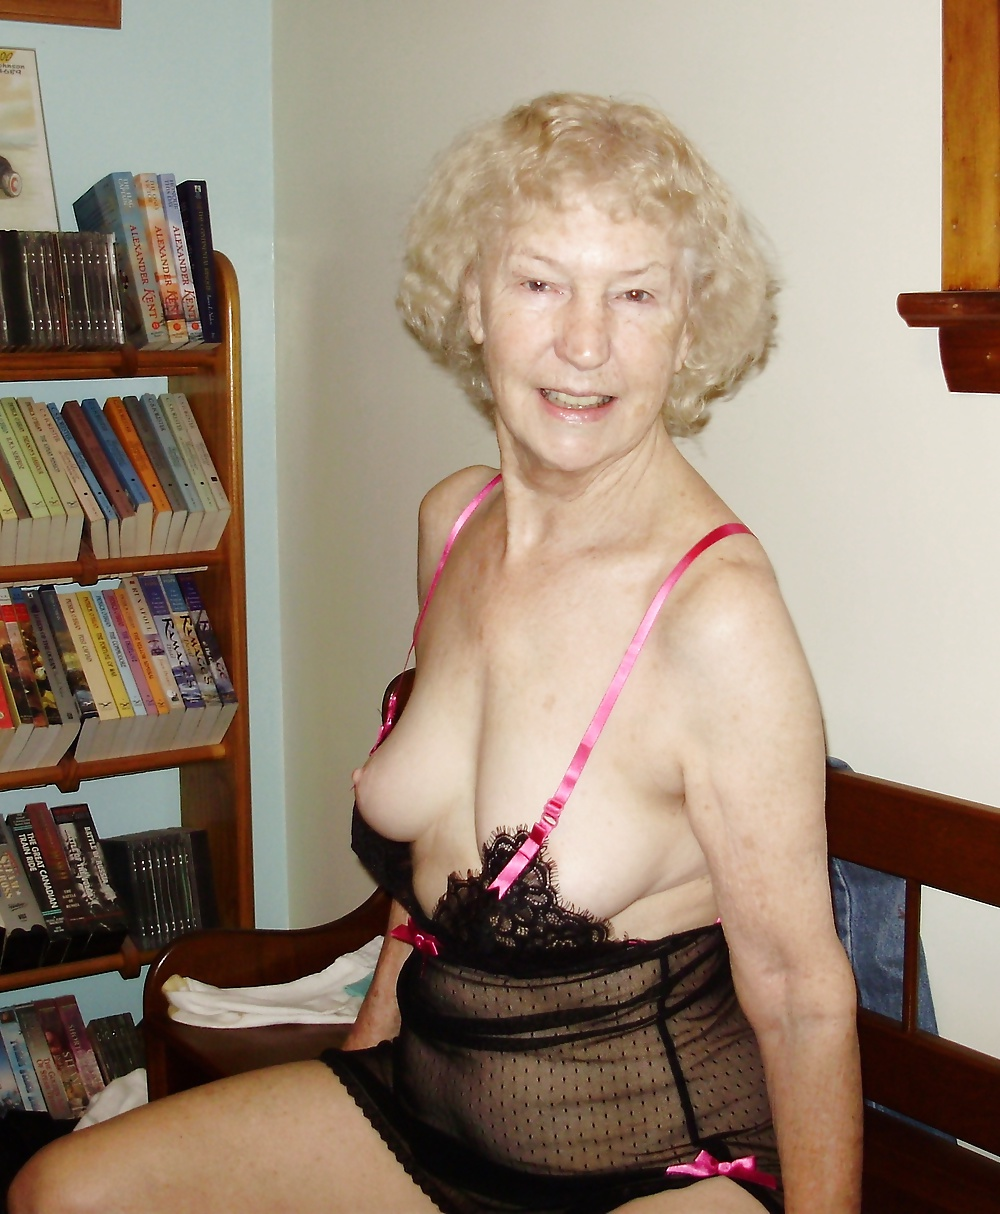 Girls nude sexy senior citizen